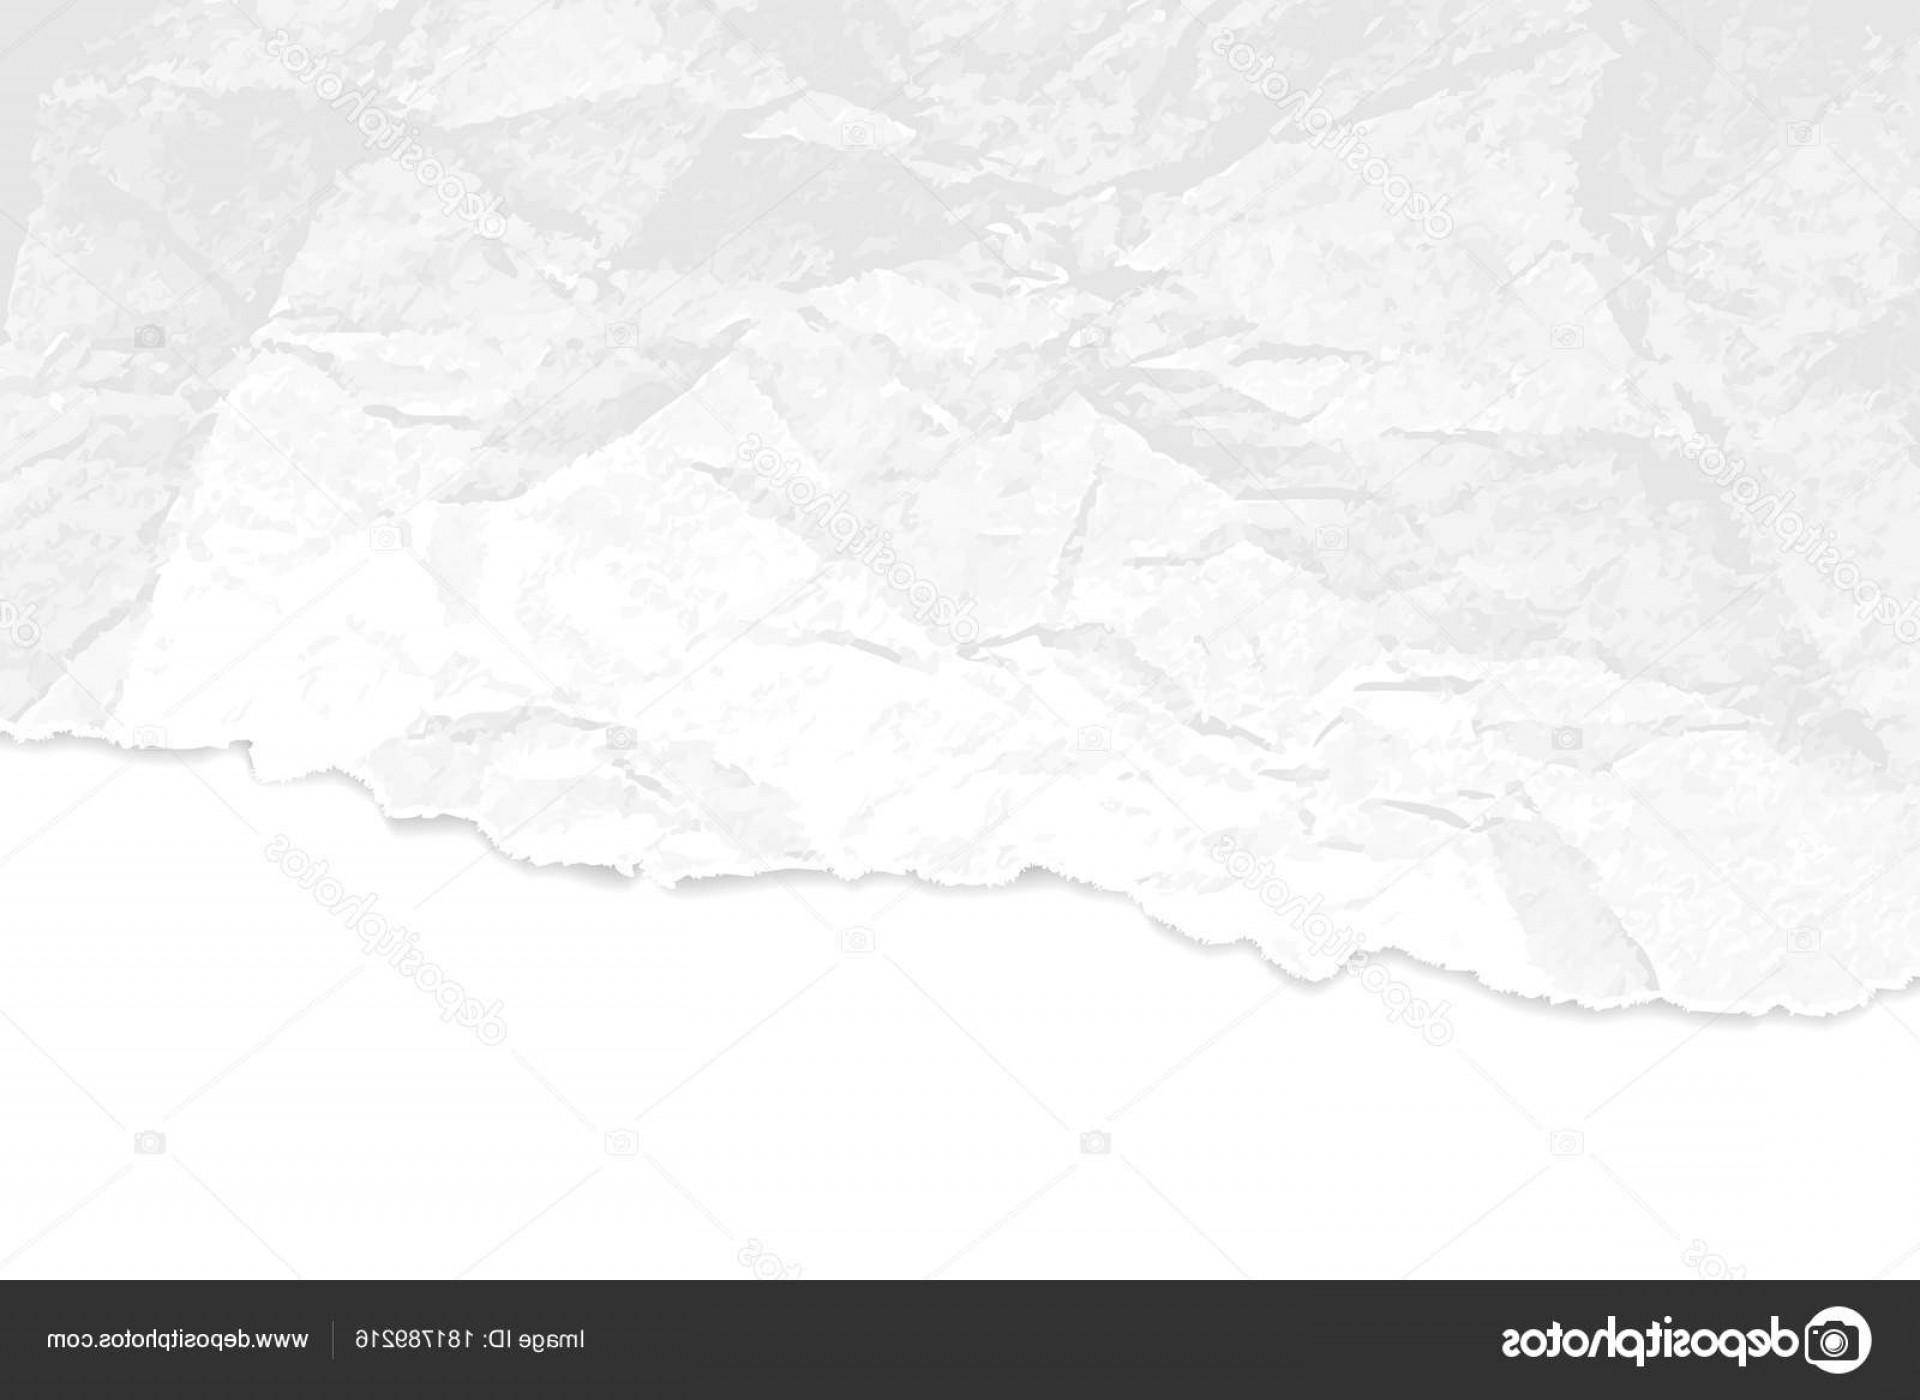 Crinkled Paper Vector: Stock Illustration Crumpled Paper Texture With Torn